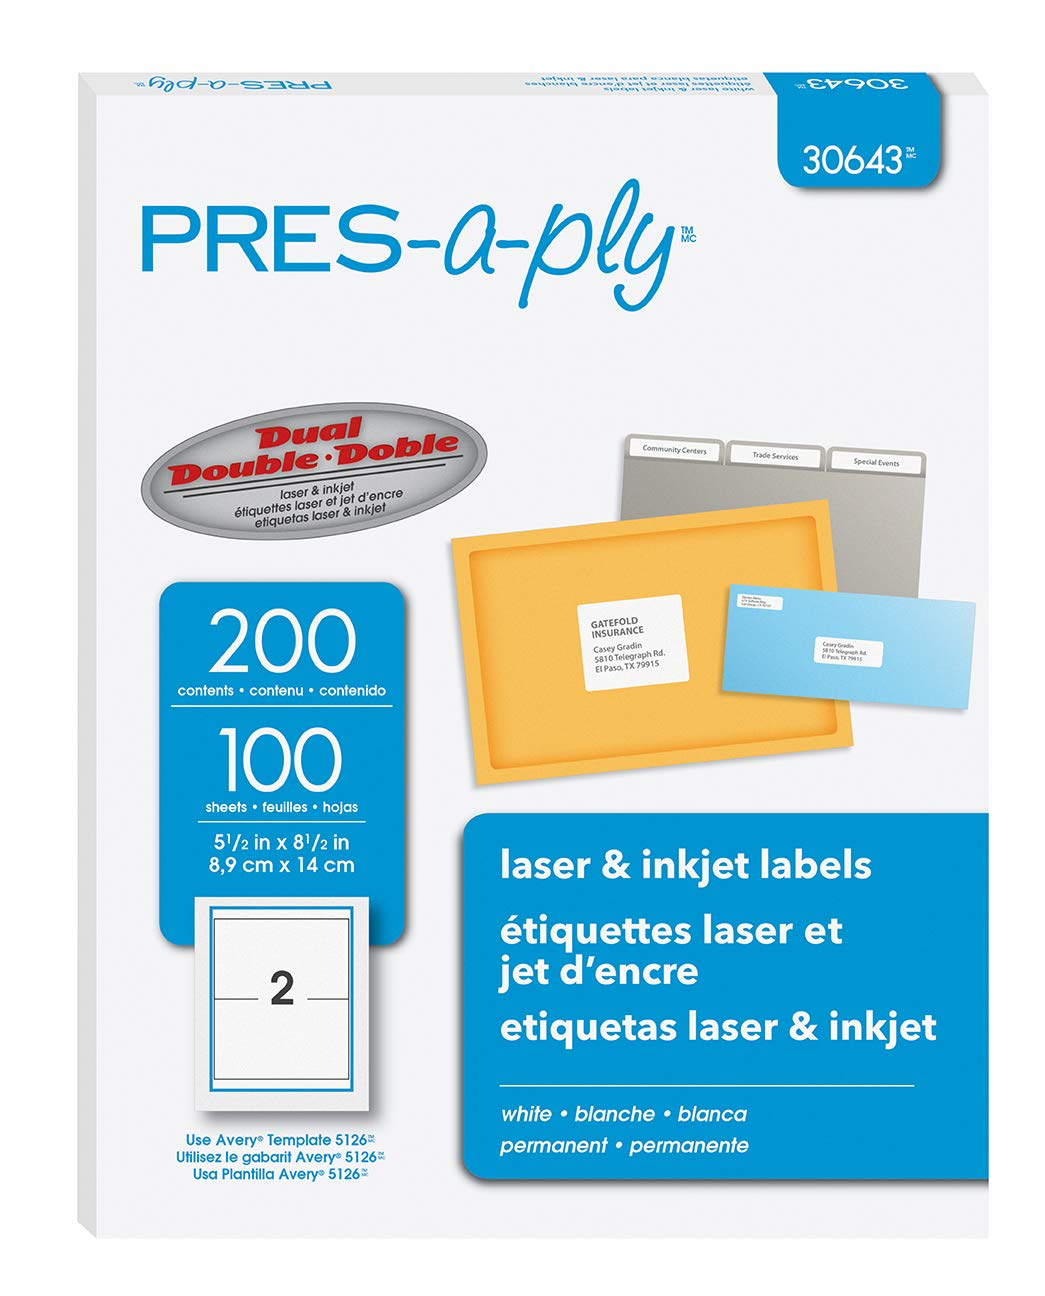 Pres-a-ply Half Sheet Self Adhesive Shipping Labels for Laser & Inkjet  Printers, 200 Count (30643)